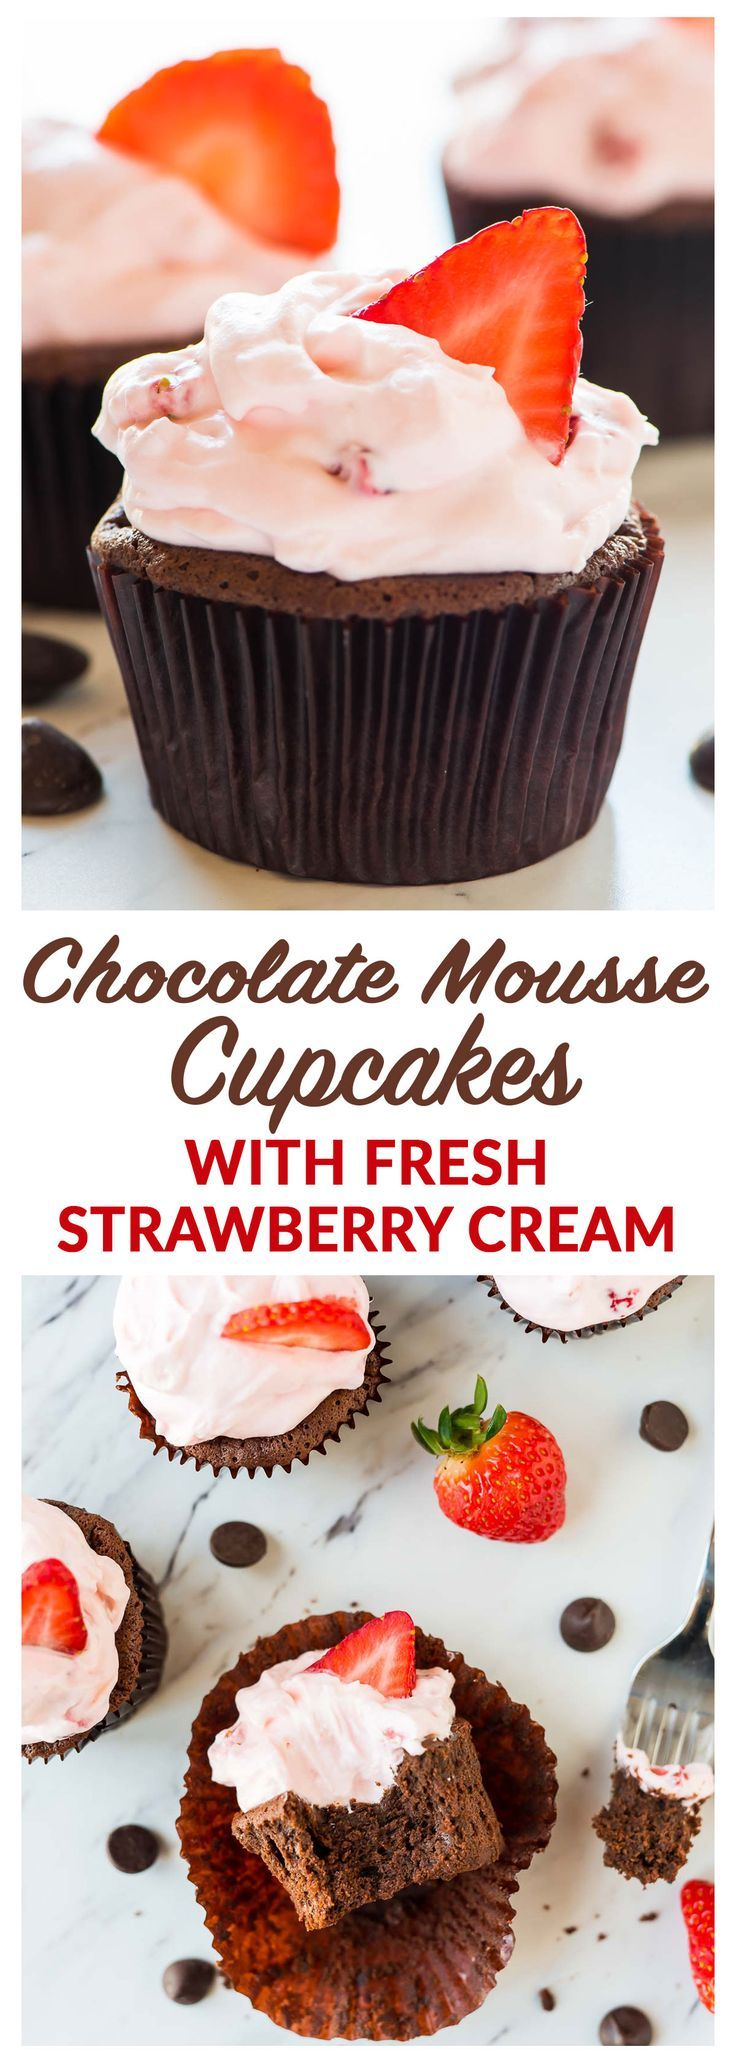 Chocolate Mousse Cupcakes with fresh strawberry cream cheese frosting.  So much easier than traditional chocolate mousse! Rich, silky, and perfect anytime you need a special dessert. The whipped cream strawberry frosting is good enough to eat with a spoon! Recipe at wellplated.com | @wellplated {gluten free}